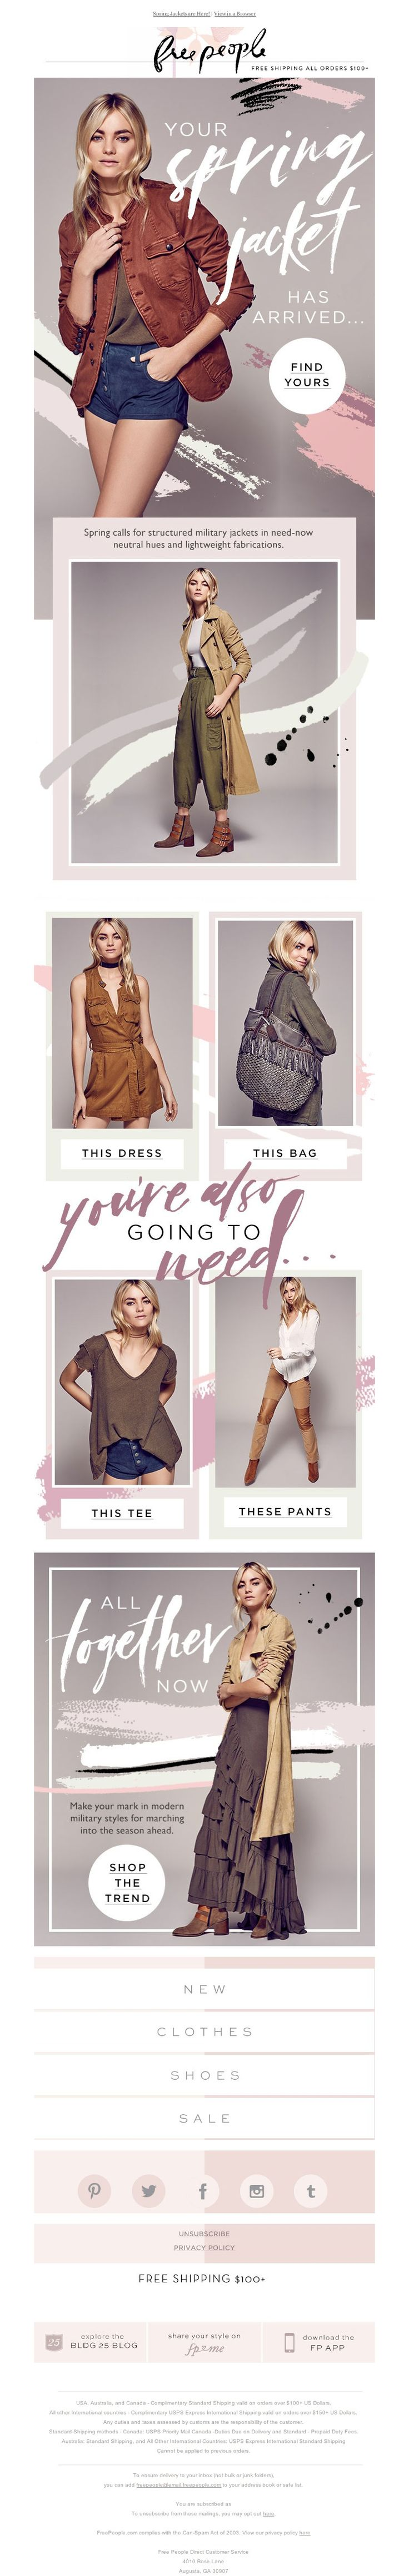 Free People - the jacket you NEED now